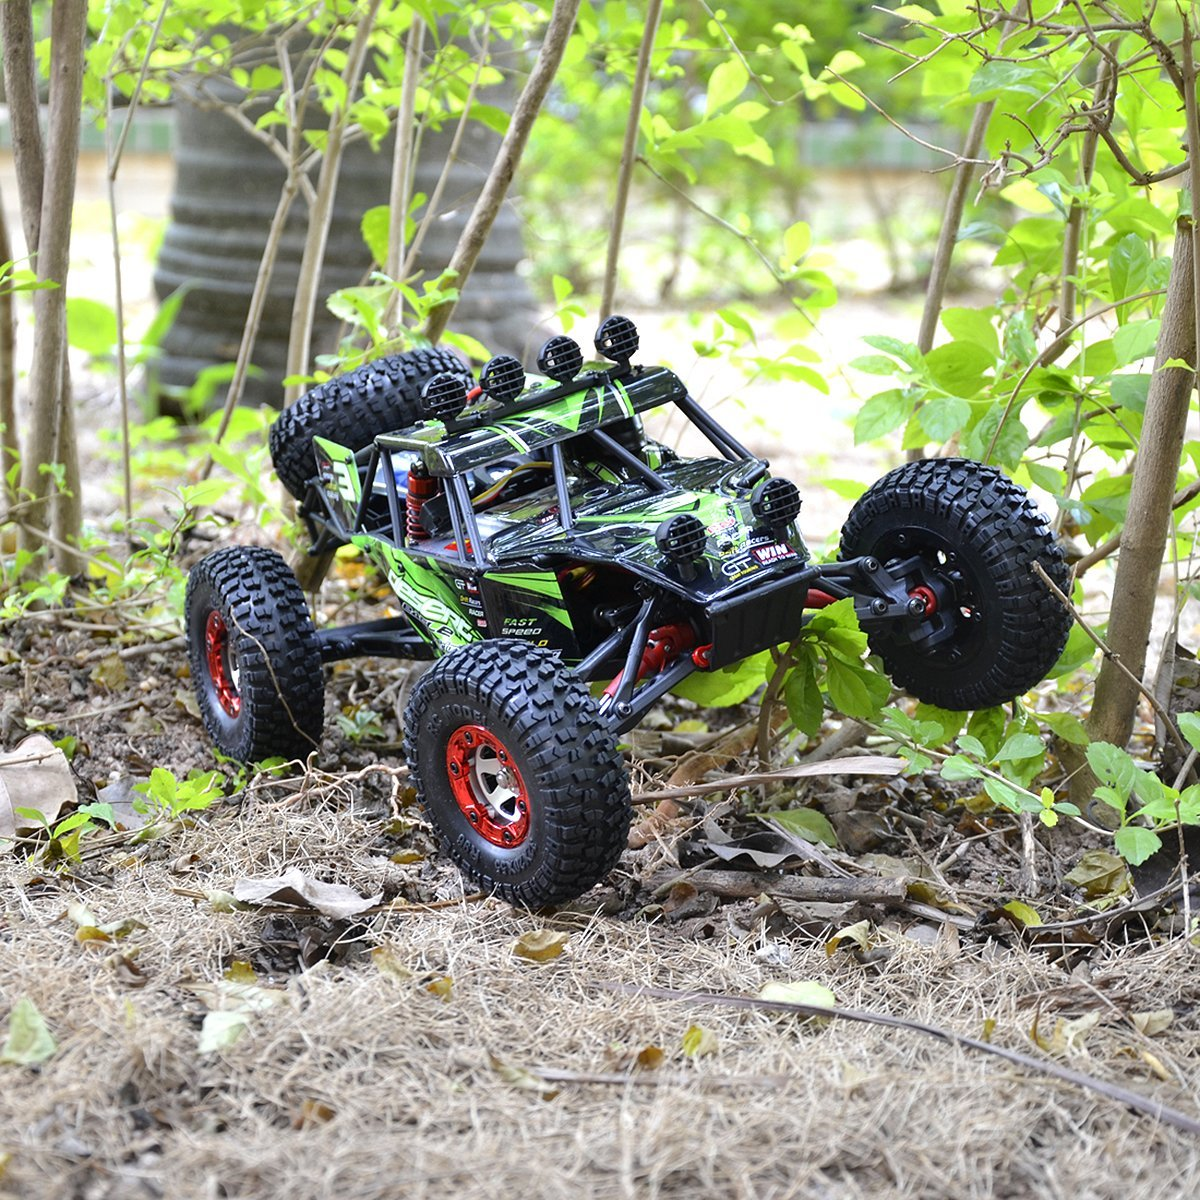 Rtr Rc Trucks Electric Cheap Rtr Rc Crawler Find Rtr Rc Crawler Deals On Line At Alibaba